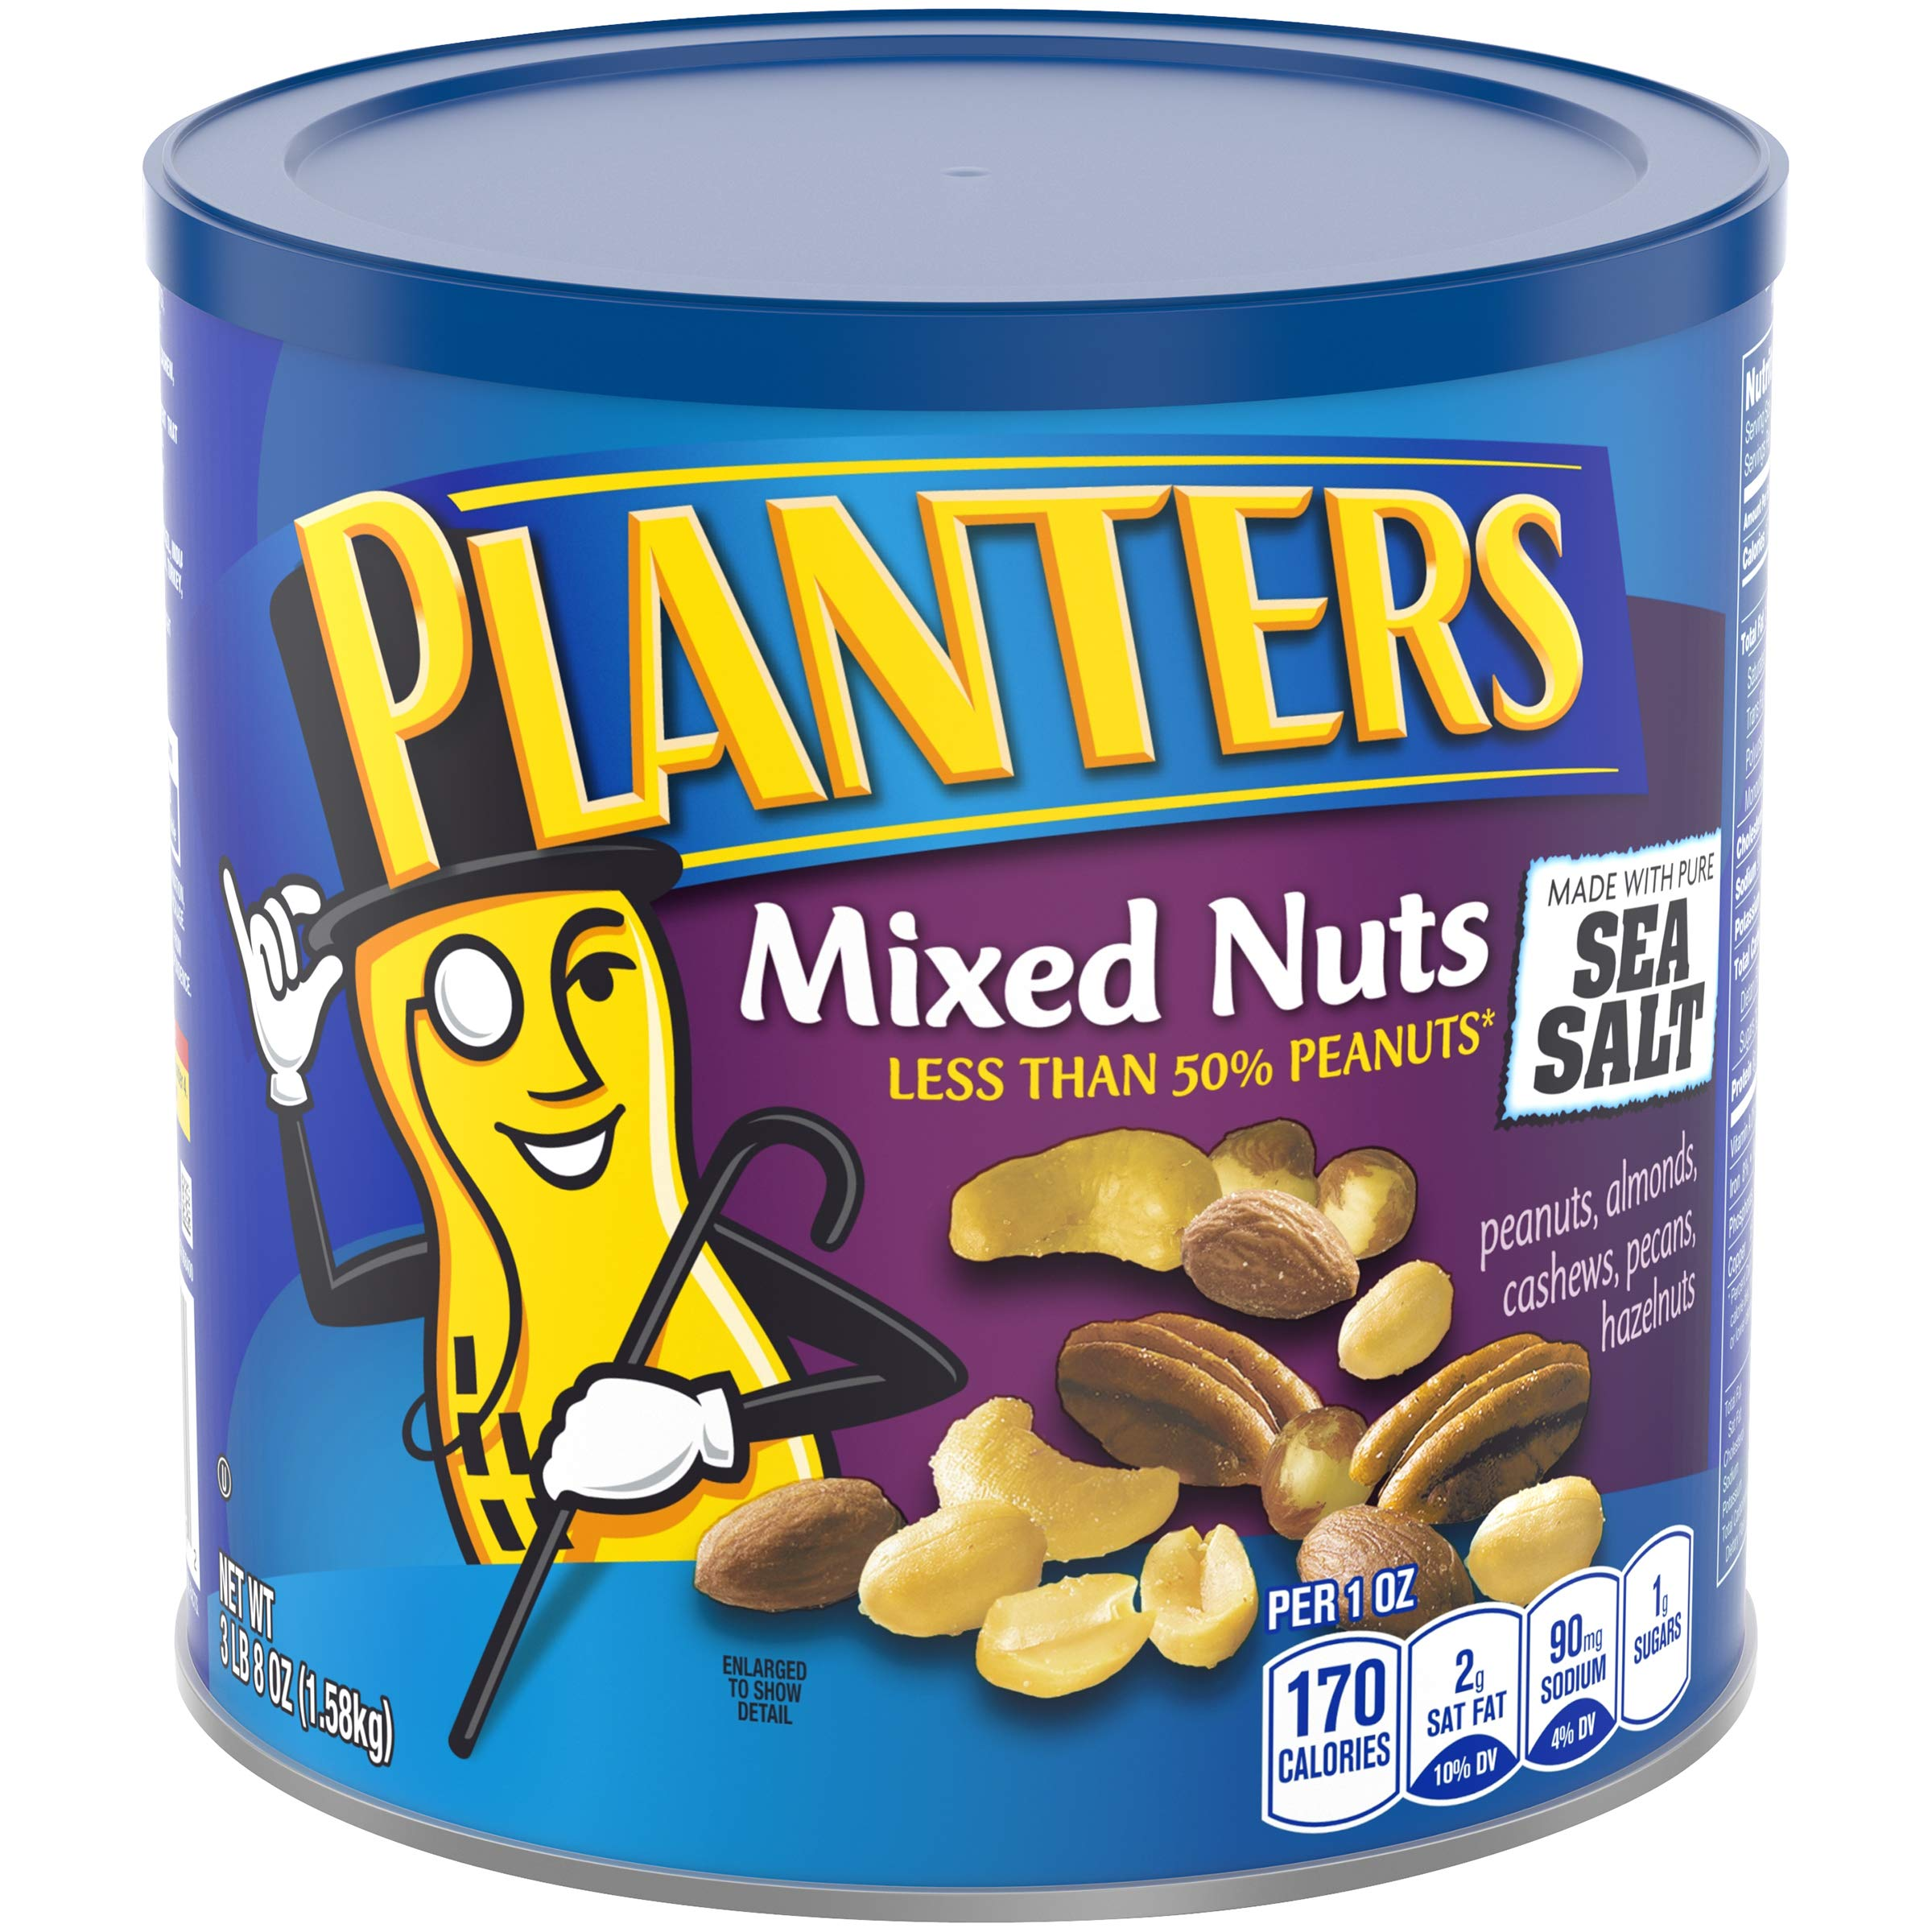 Planters Mixed Nuts Mixed Nuts Regular 56 oz Canister